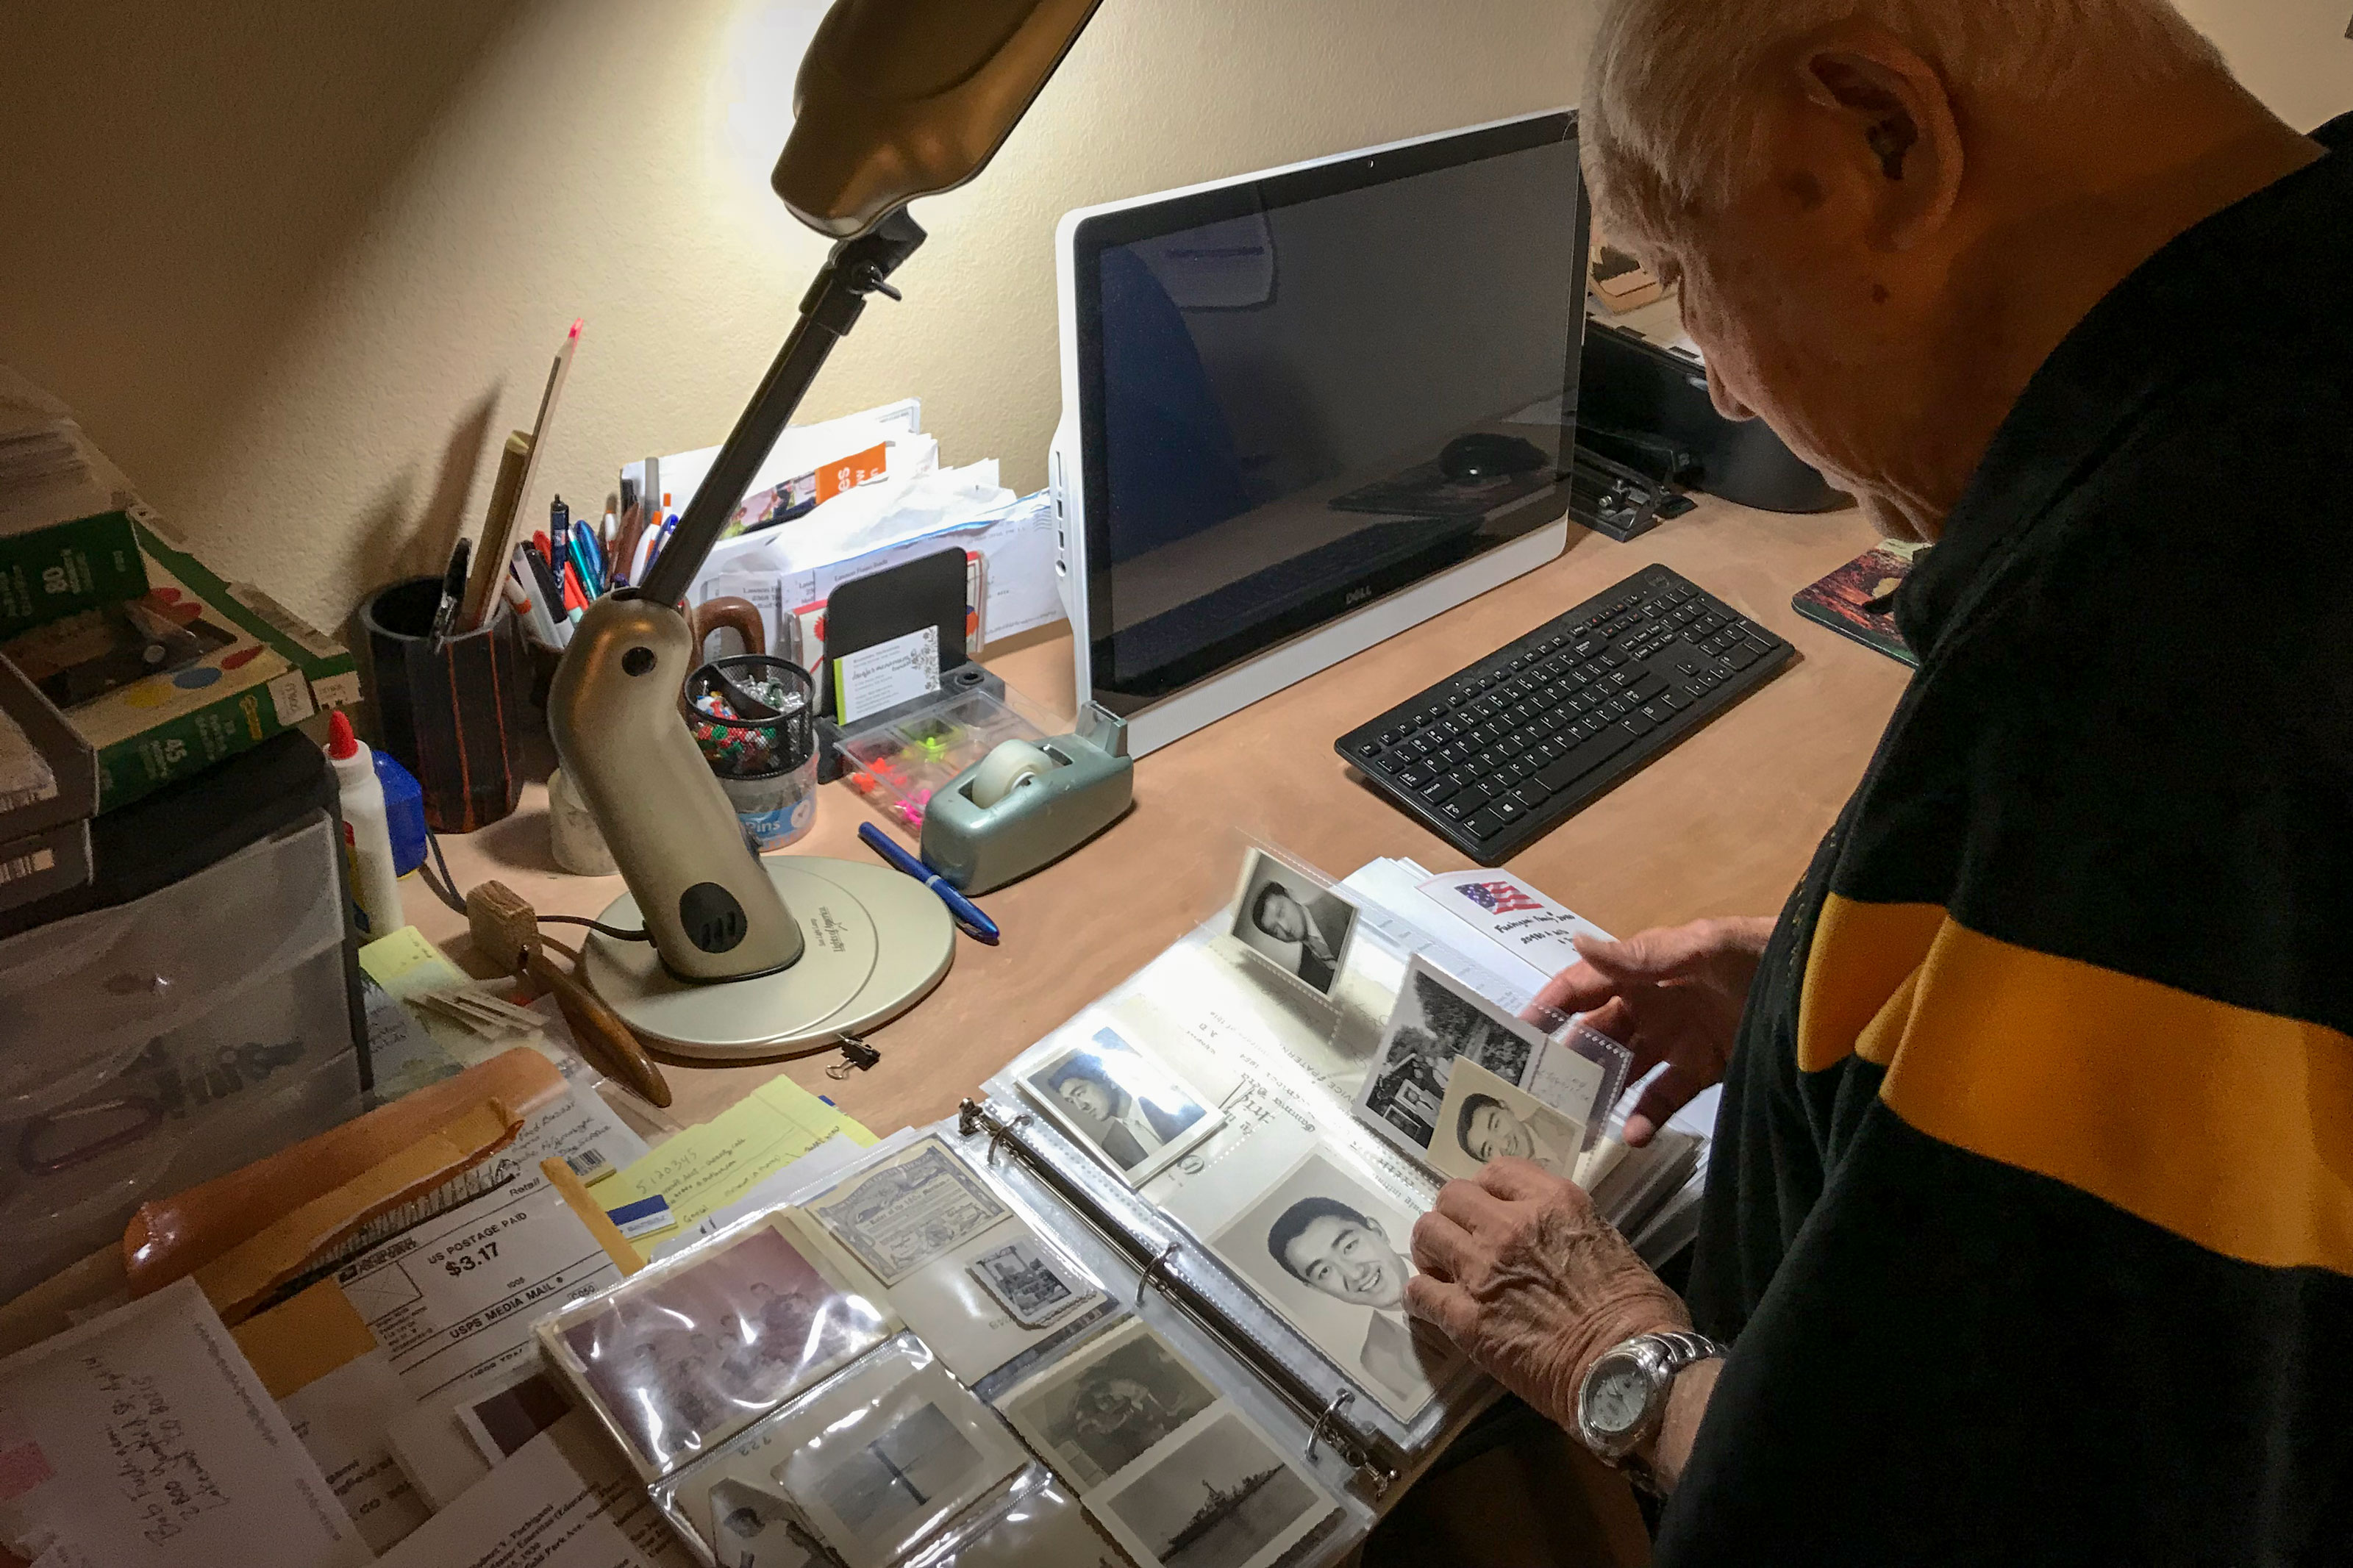 <p>88-year-old Bob Fuchigami looks through a binder of family photos at his home in Lakewood. He spent more than 3 years without freedom as an incarcerated Japanese-American during World War II.</p>